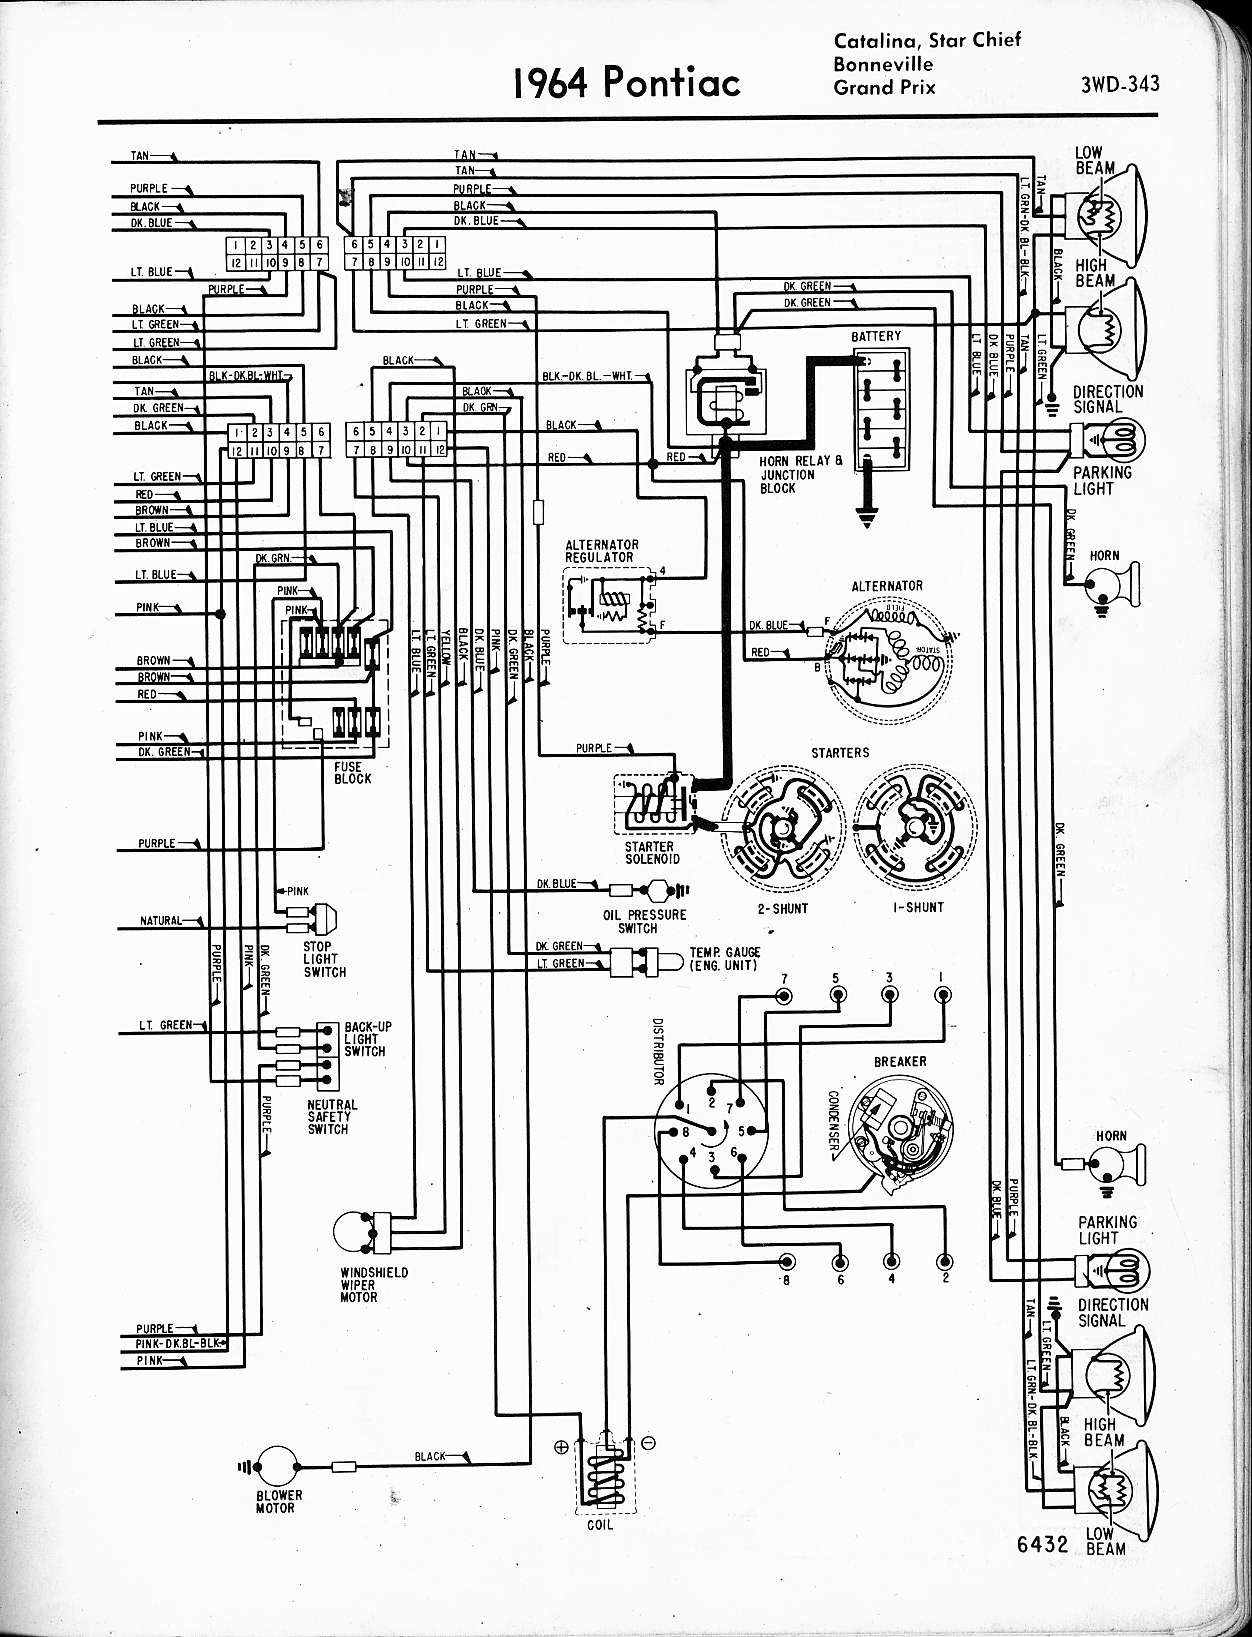 69 Camaro Wiper Motor Diagram Engine Wiring Diagram Images